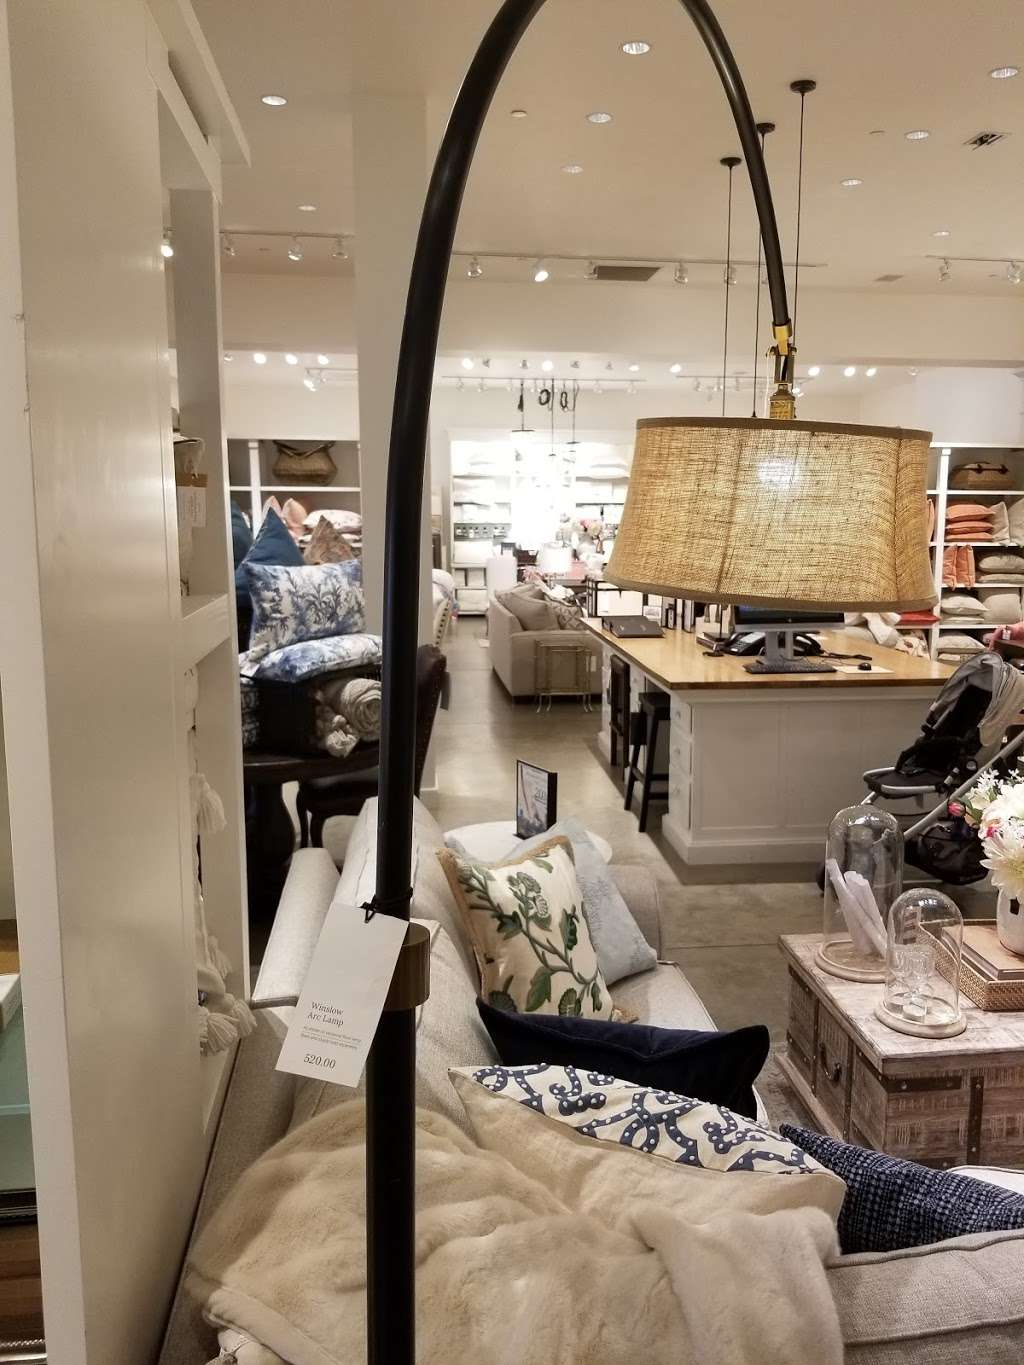 Pottery Barn - furniture store  | Photo 5 of 10 | Address: 7301 S Santa Fe Dr Unit 650, Littleton, CO 80120, USA | Phone: (303) 794-5220